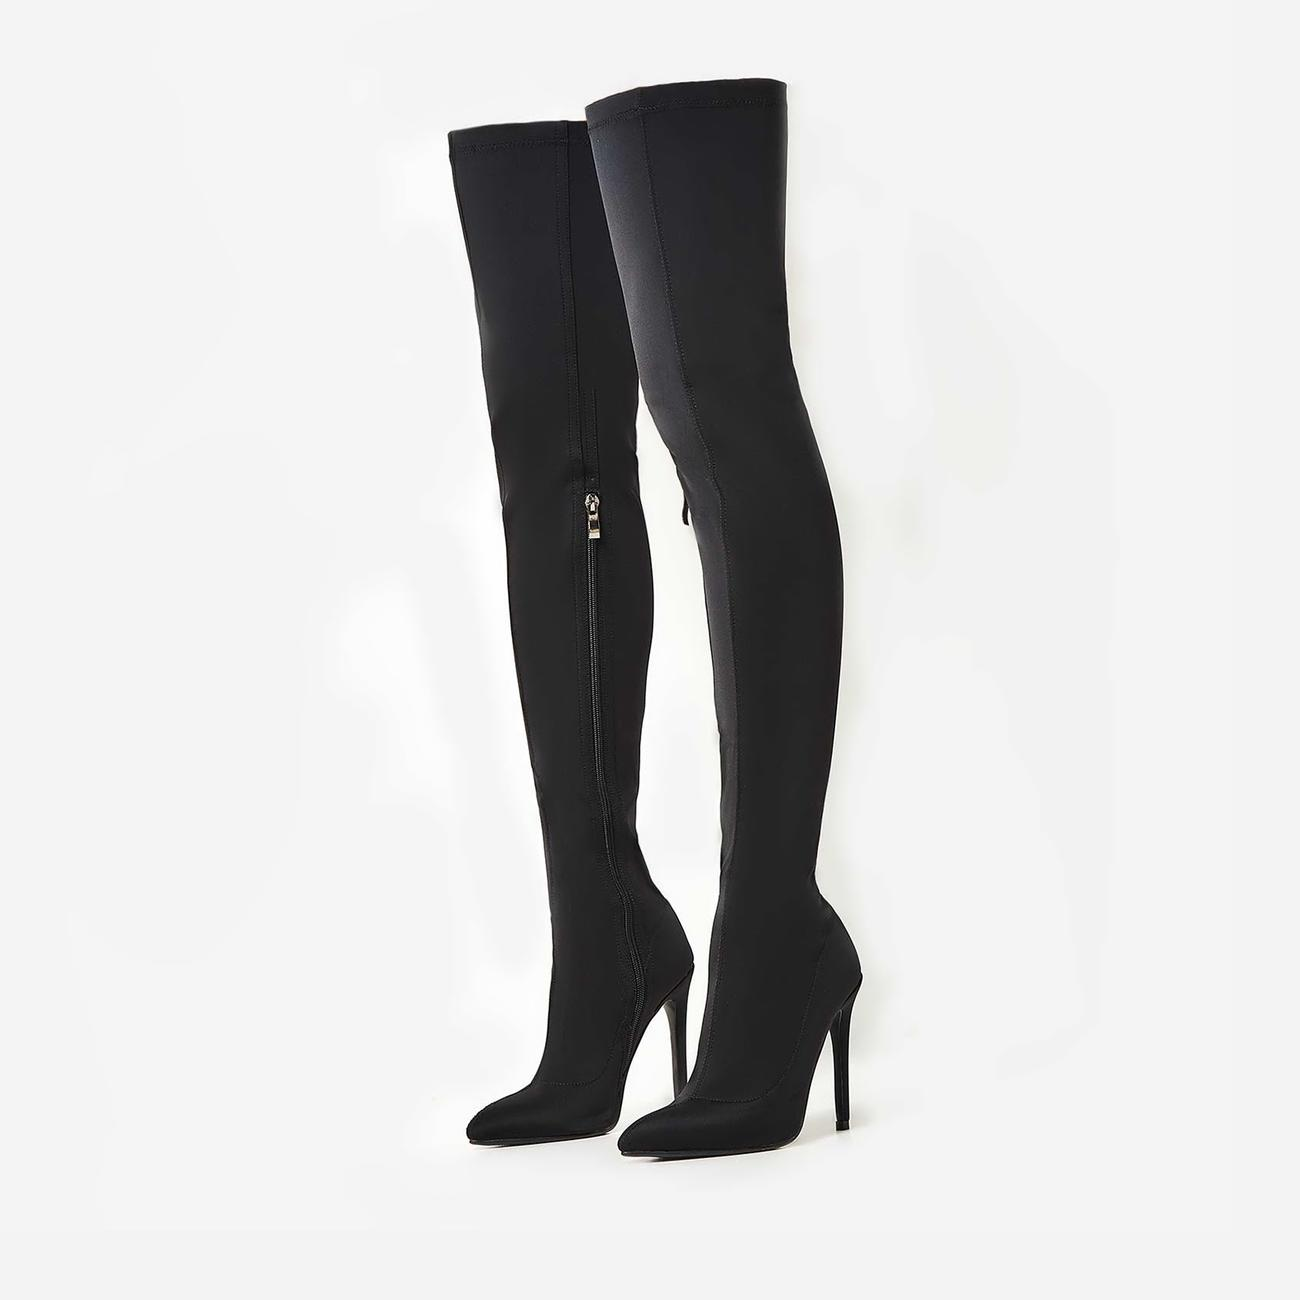 Alabama Pointed Toe Over The Knee Thigh High Long Sock Boot In Black Lycra Image 3